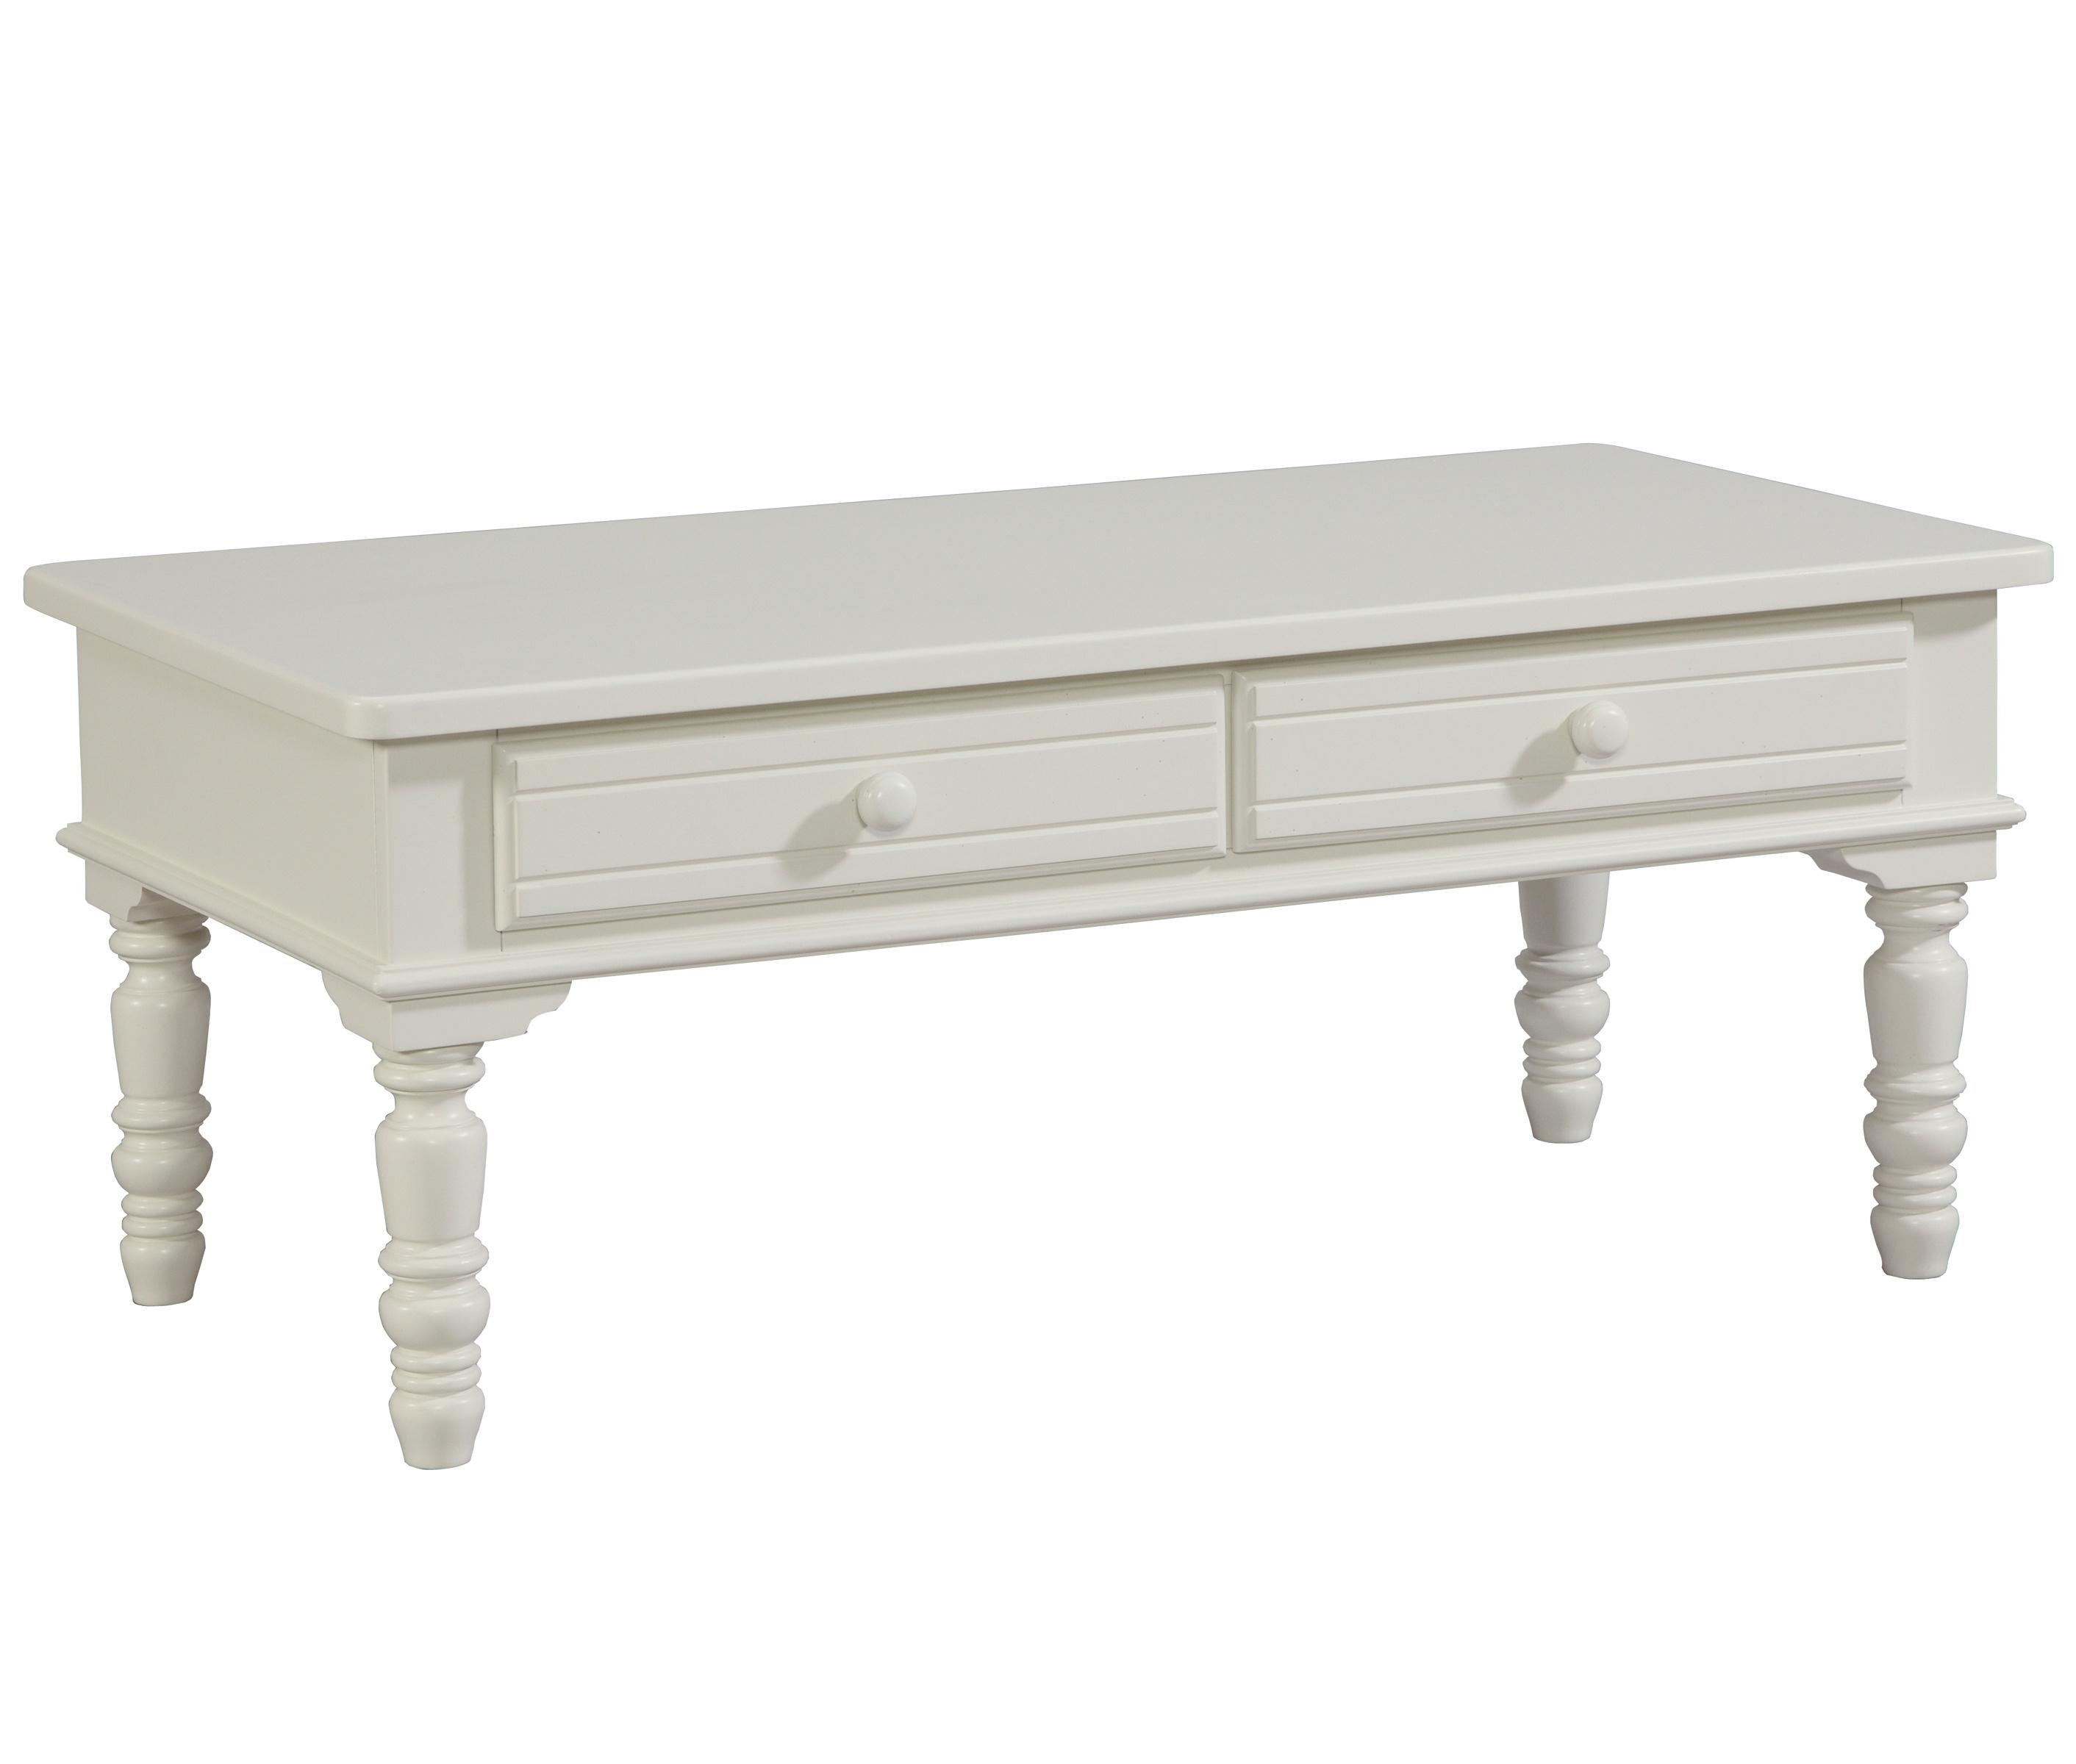 Broyhill Furniture Seabrooke Rectangular Cocktail Table - Item Number: 4471-001